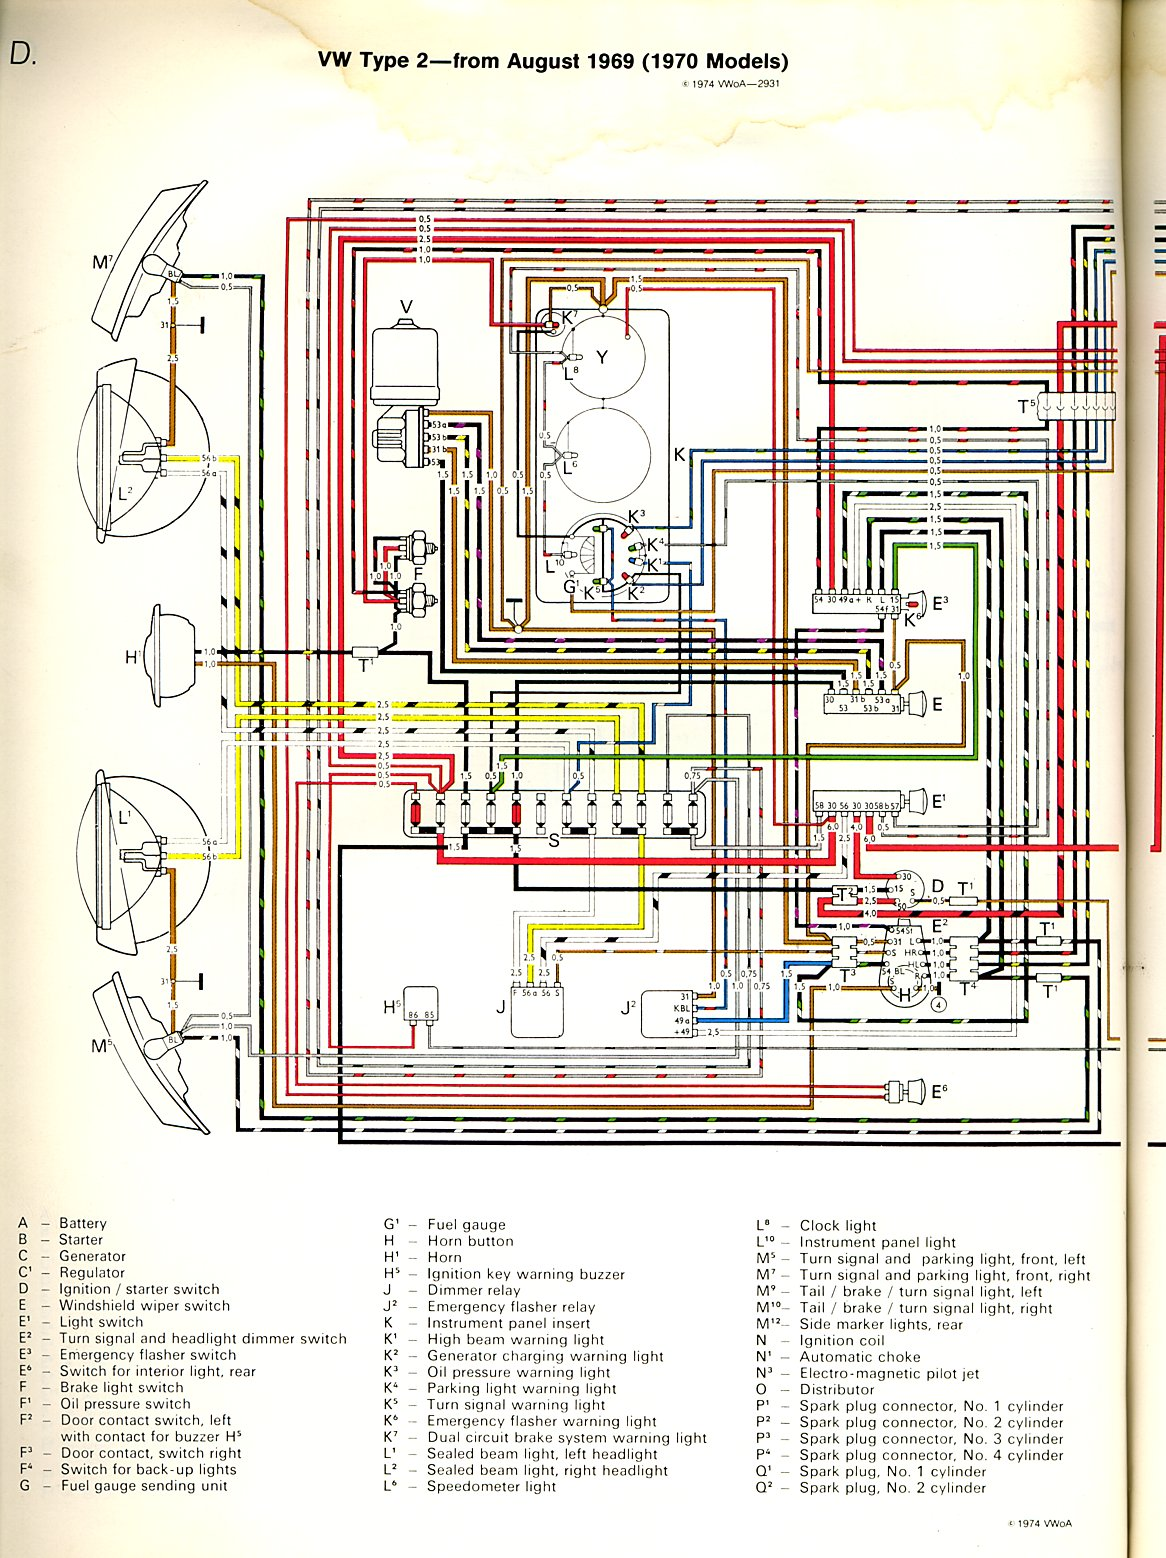 baybus_70a thesamba com type 2 wiring diagrams 1969 firebird wiring diagrams at nearapp.co